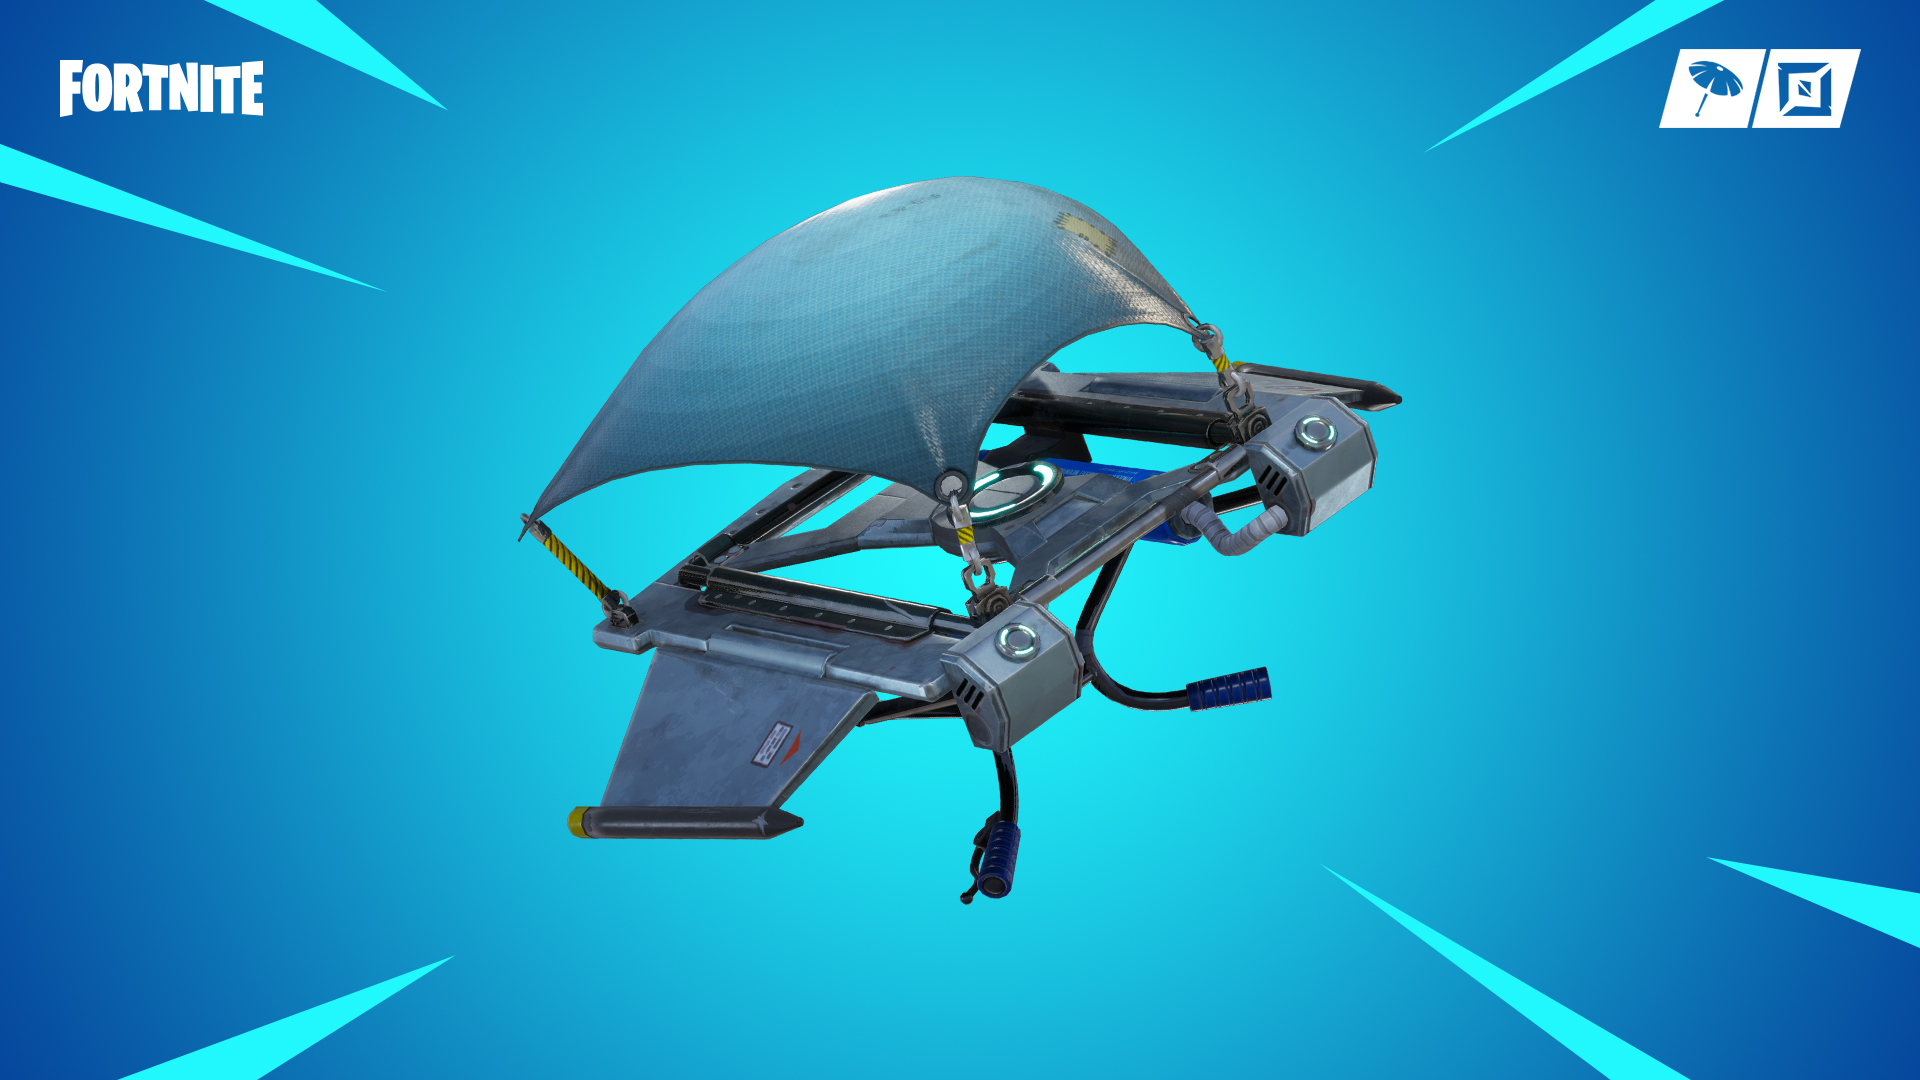 Fortnite V7 20 Update Patch Notes - Scoped Revolver, Glider